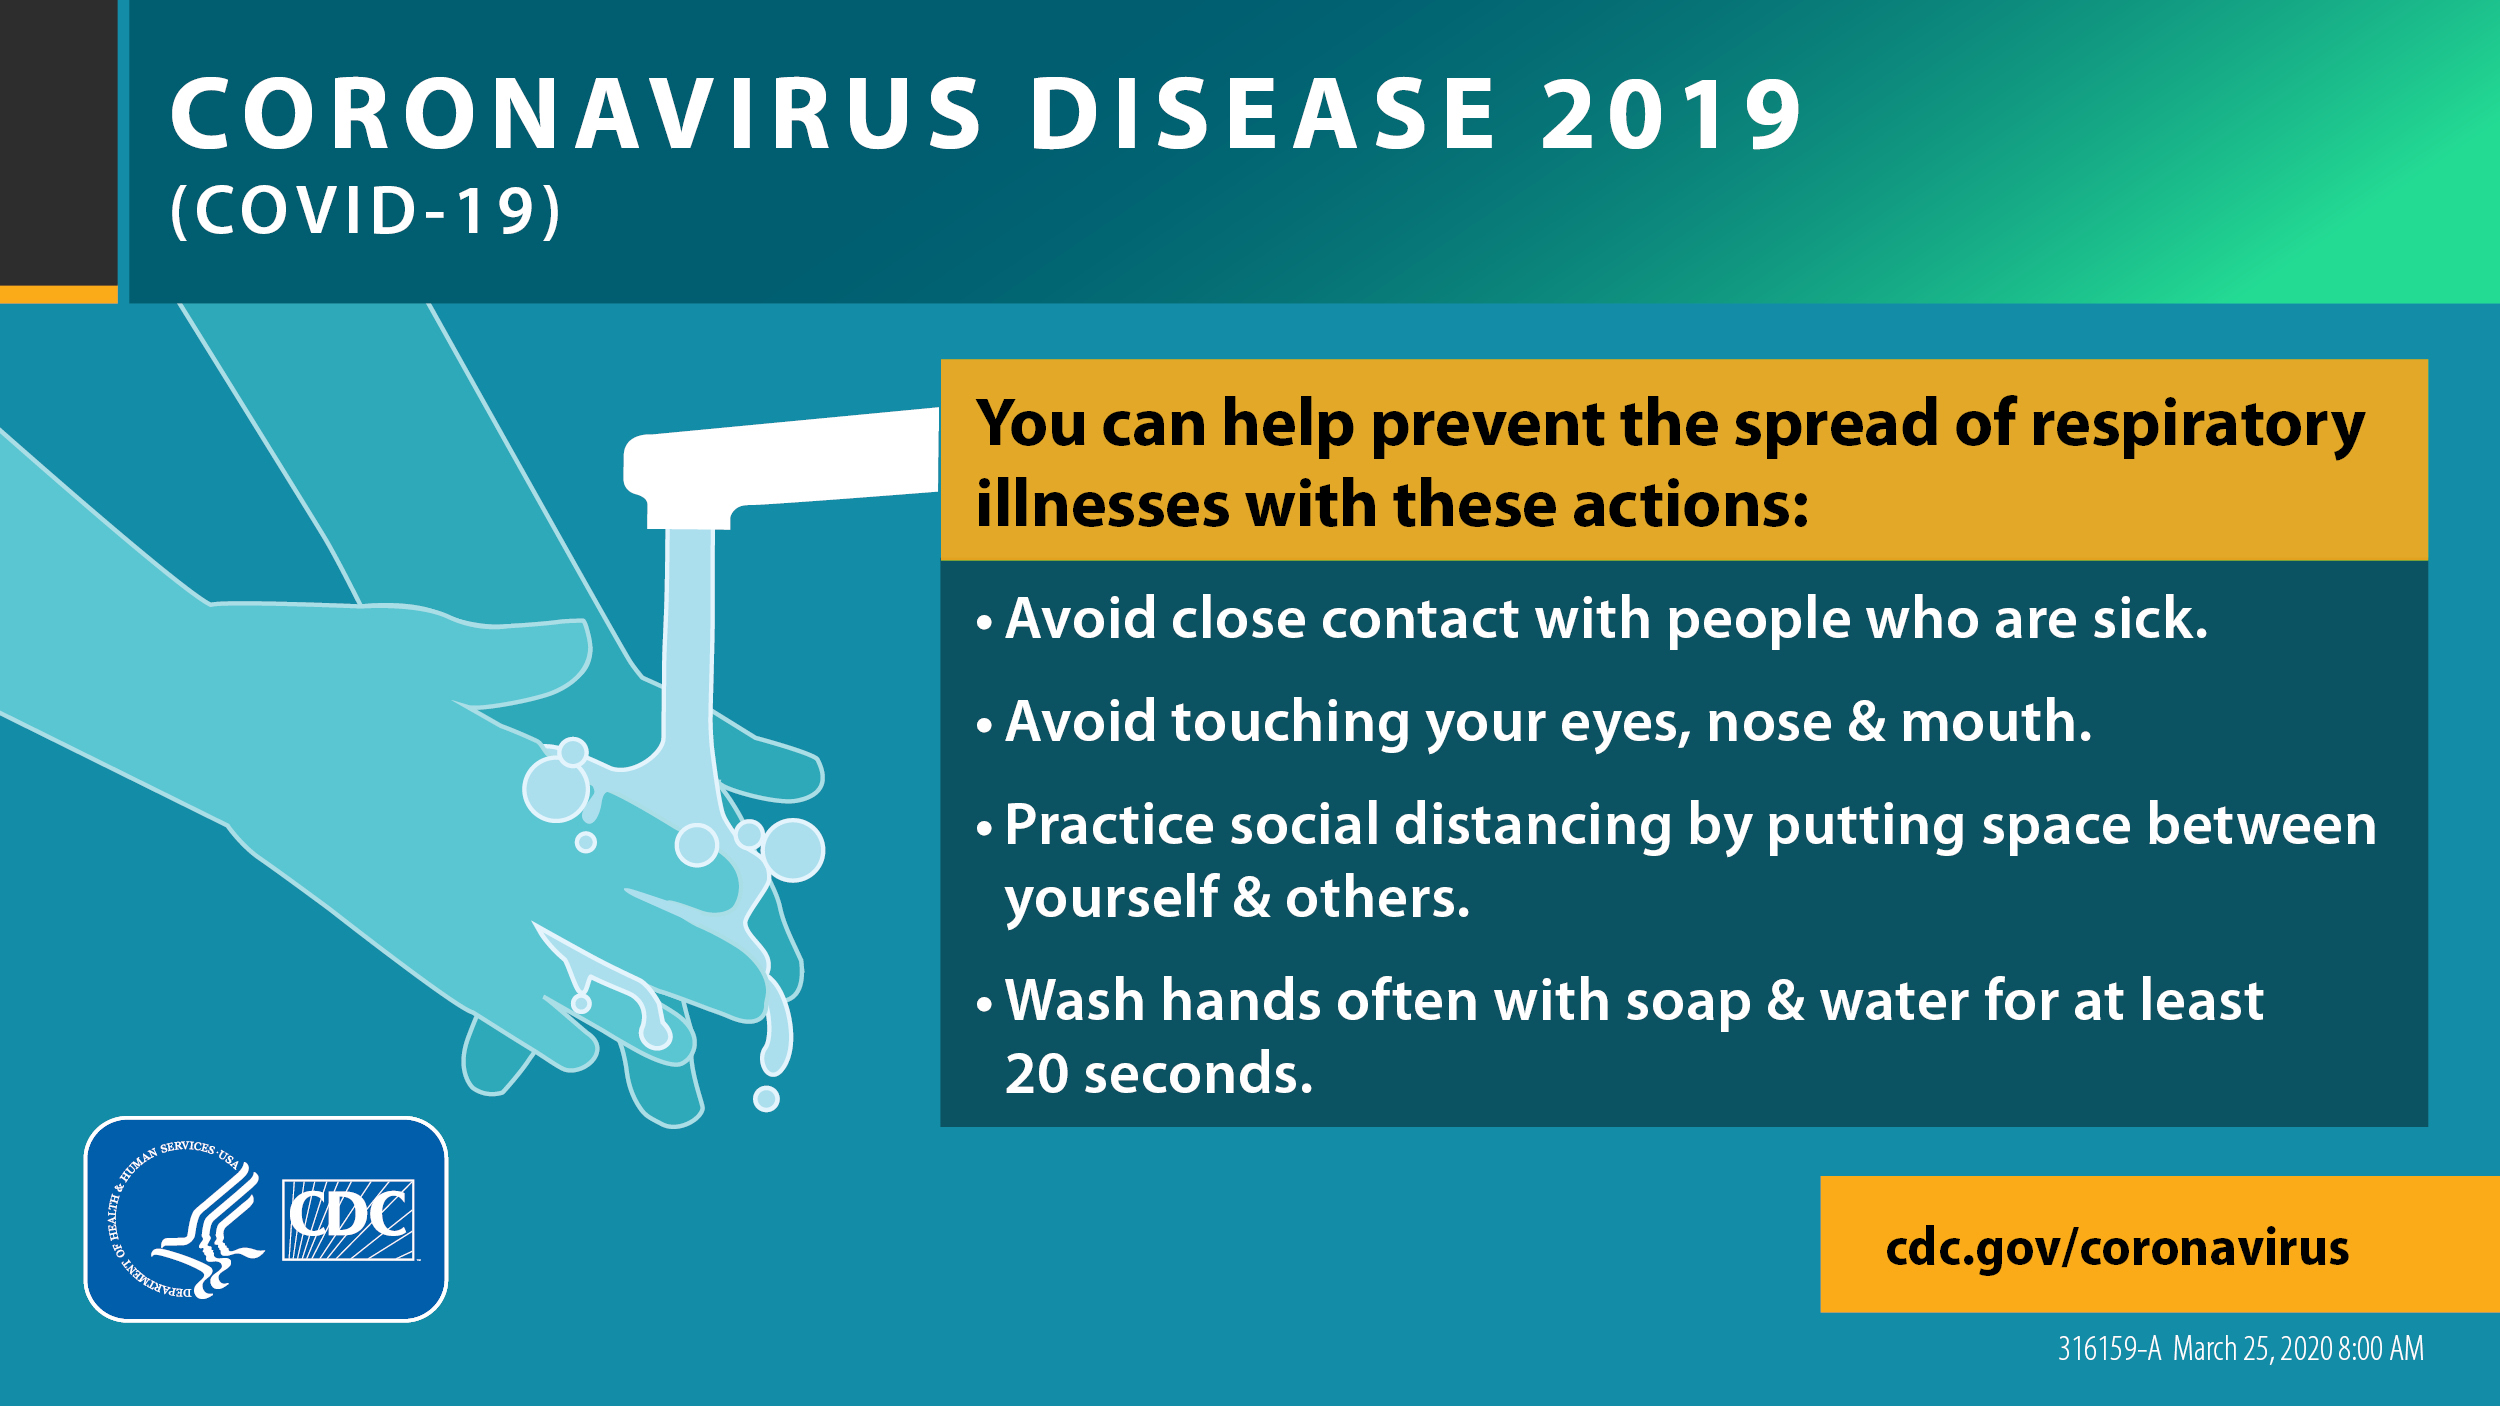 Tips to prevent the spread of coronavirus